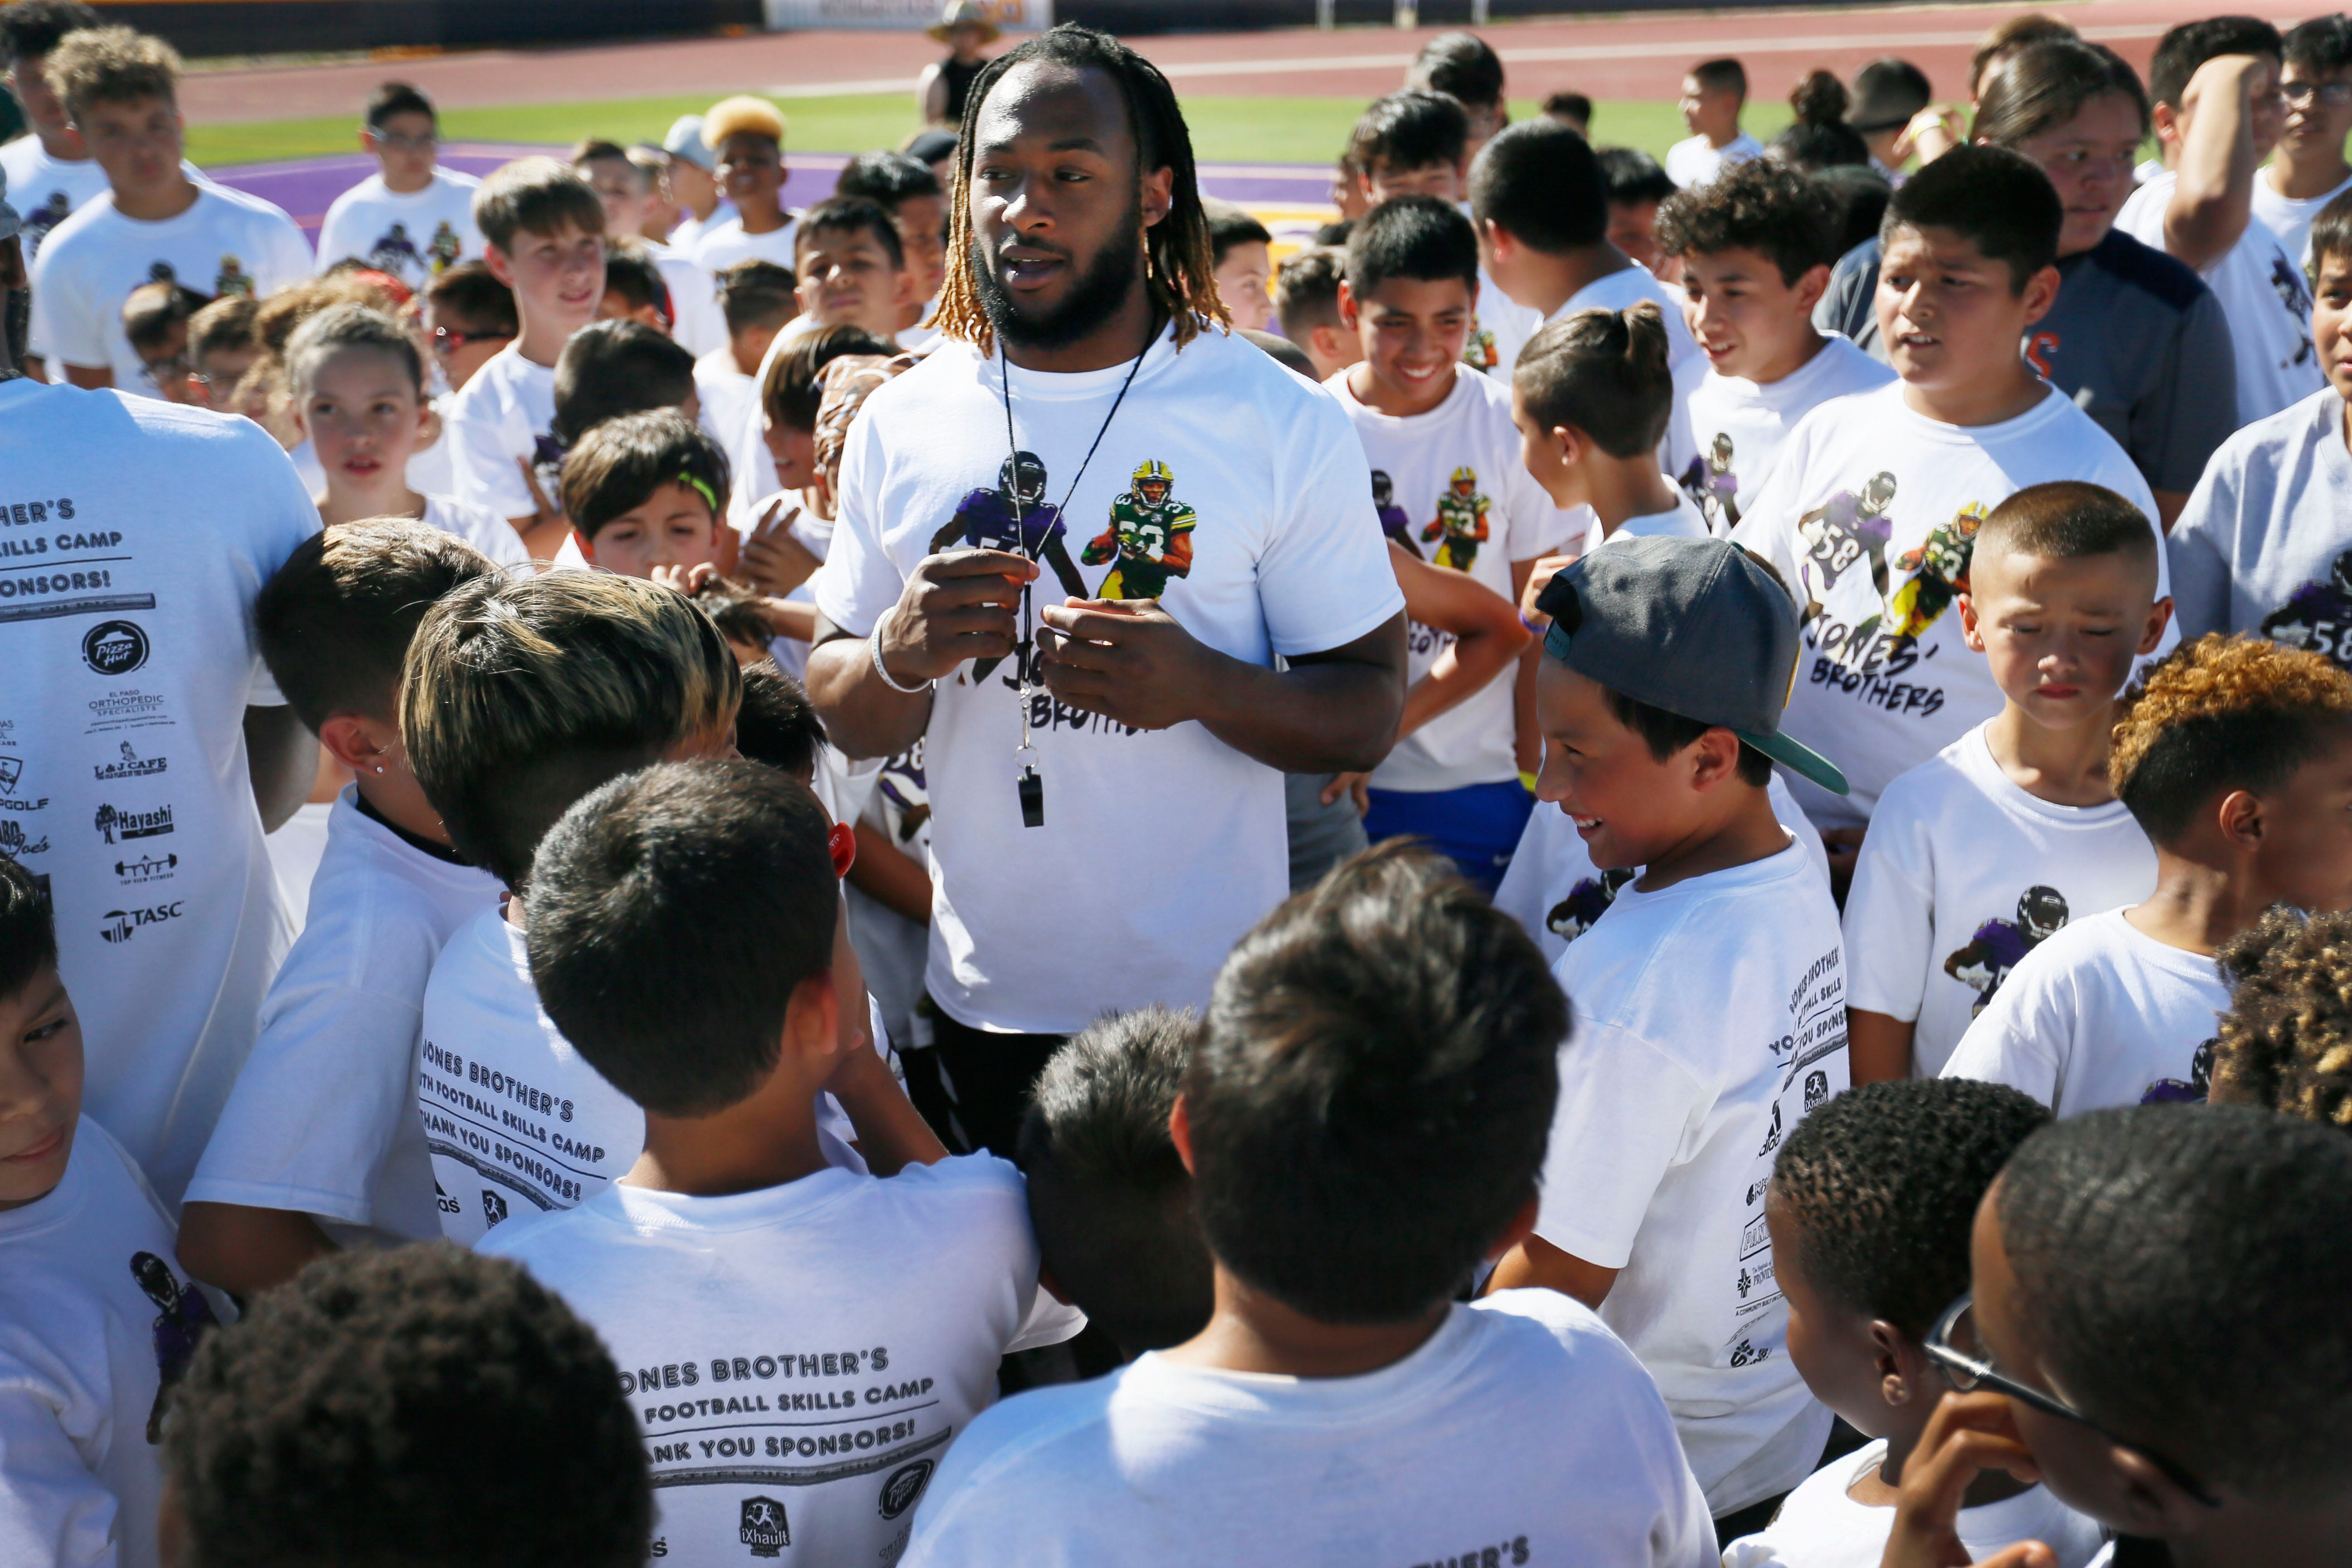 Running back for the Green Bay Packers Aaron Jones talks to the kids before they start running drills at the Jones Brothers Youth Football Skills Camp Wednesday, June 19, 2019 at Burges High School in El Paso. Aaron and Alvin Jones have hosted the camp since 2017. The brothers played football at Burges High School and were standouts at UTEP.